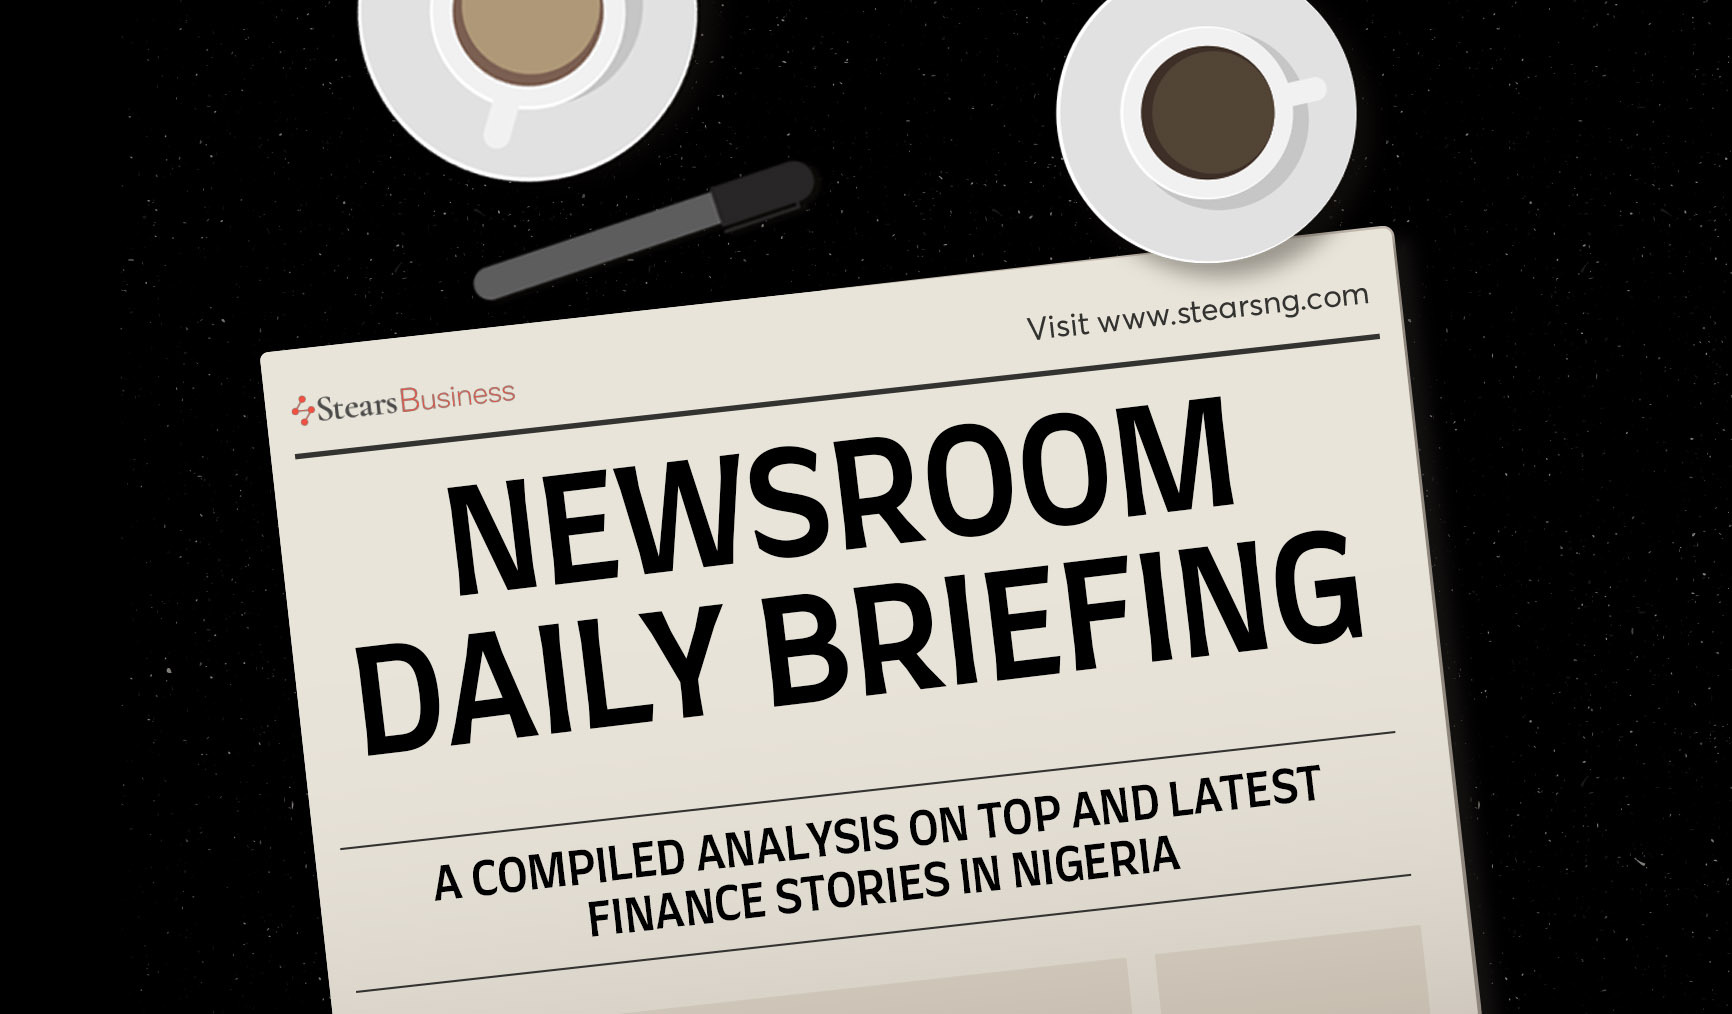 Daily Briefing: CBN withdraws ₦216 billion from banks